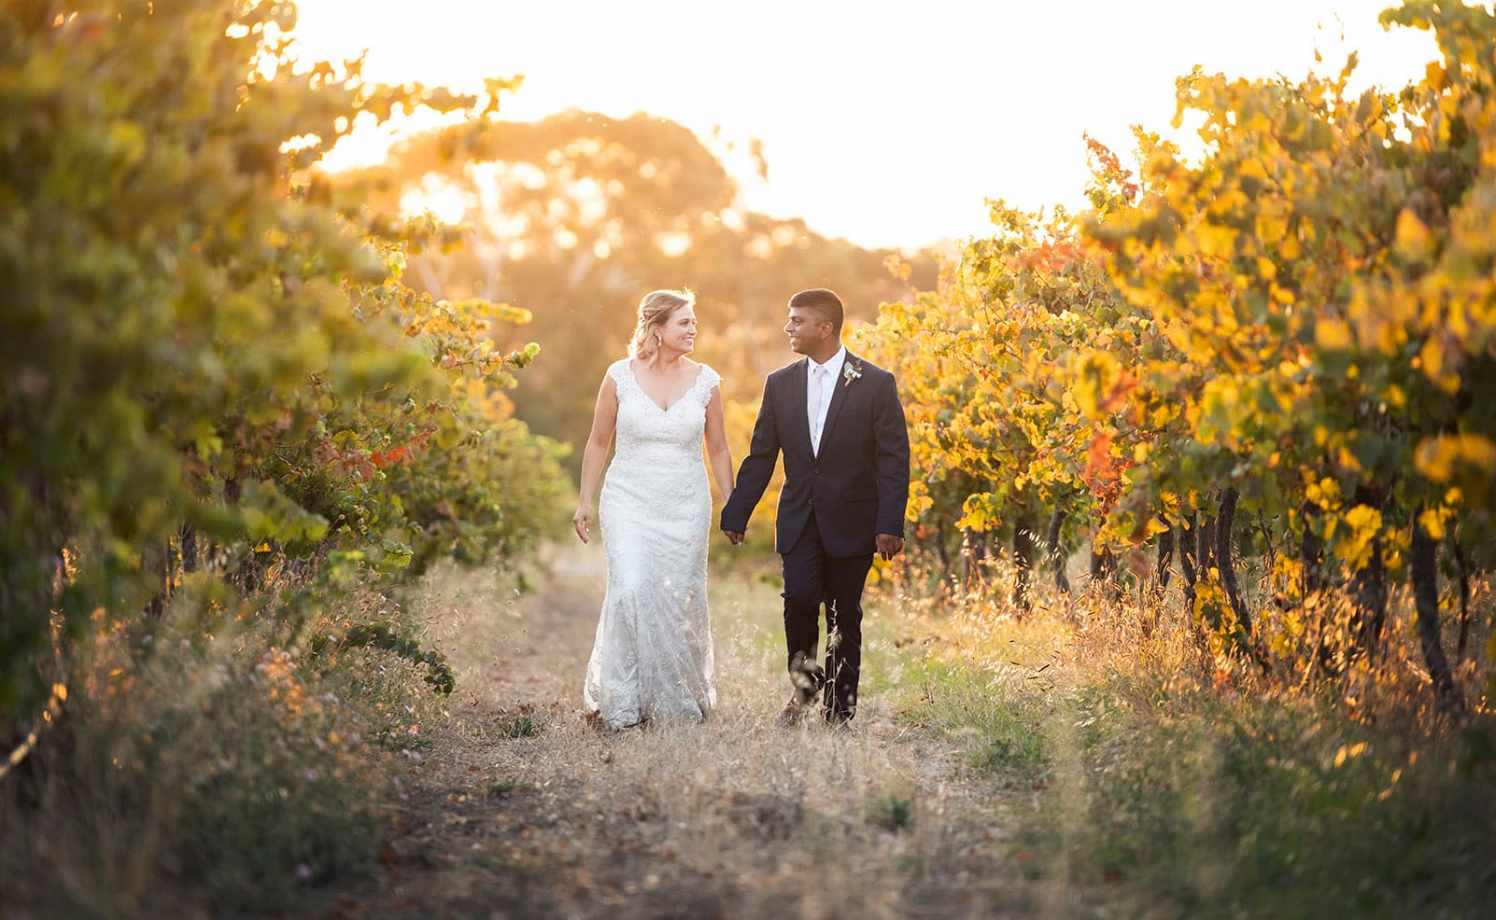 Bride and groom walking together in vineyards